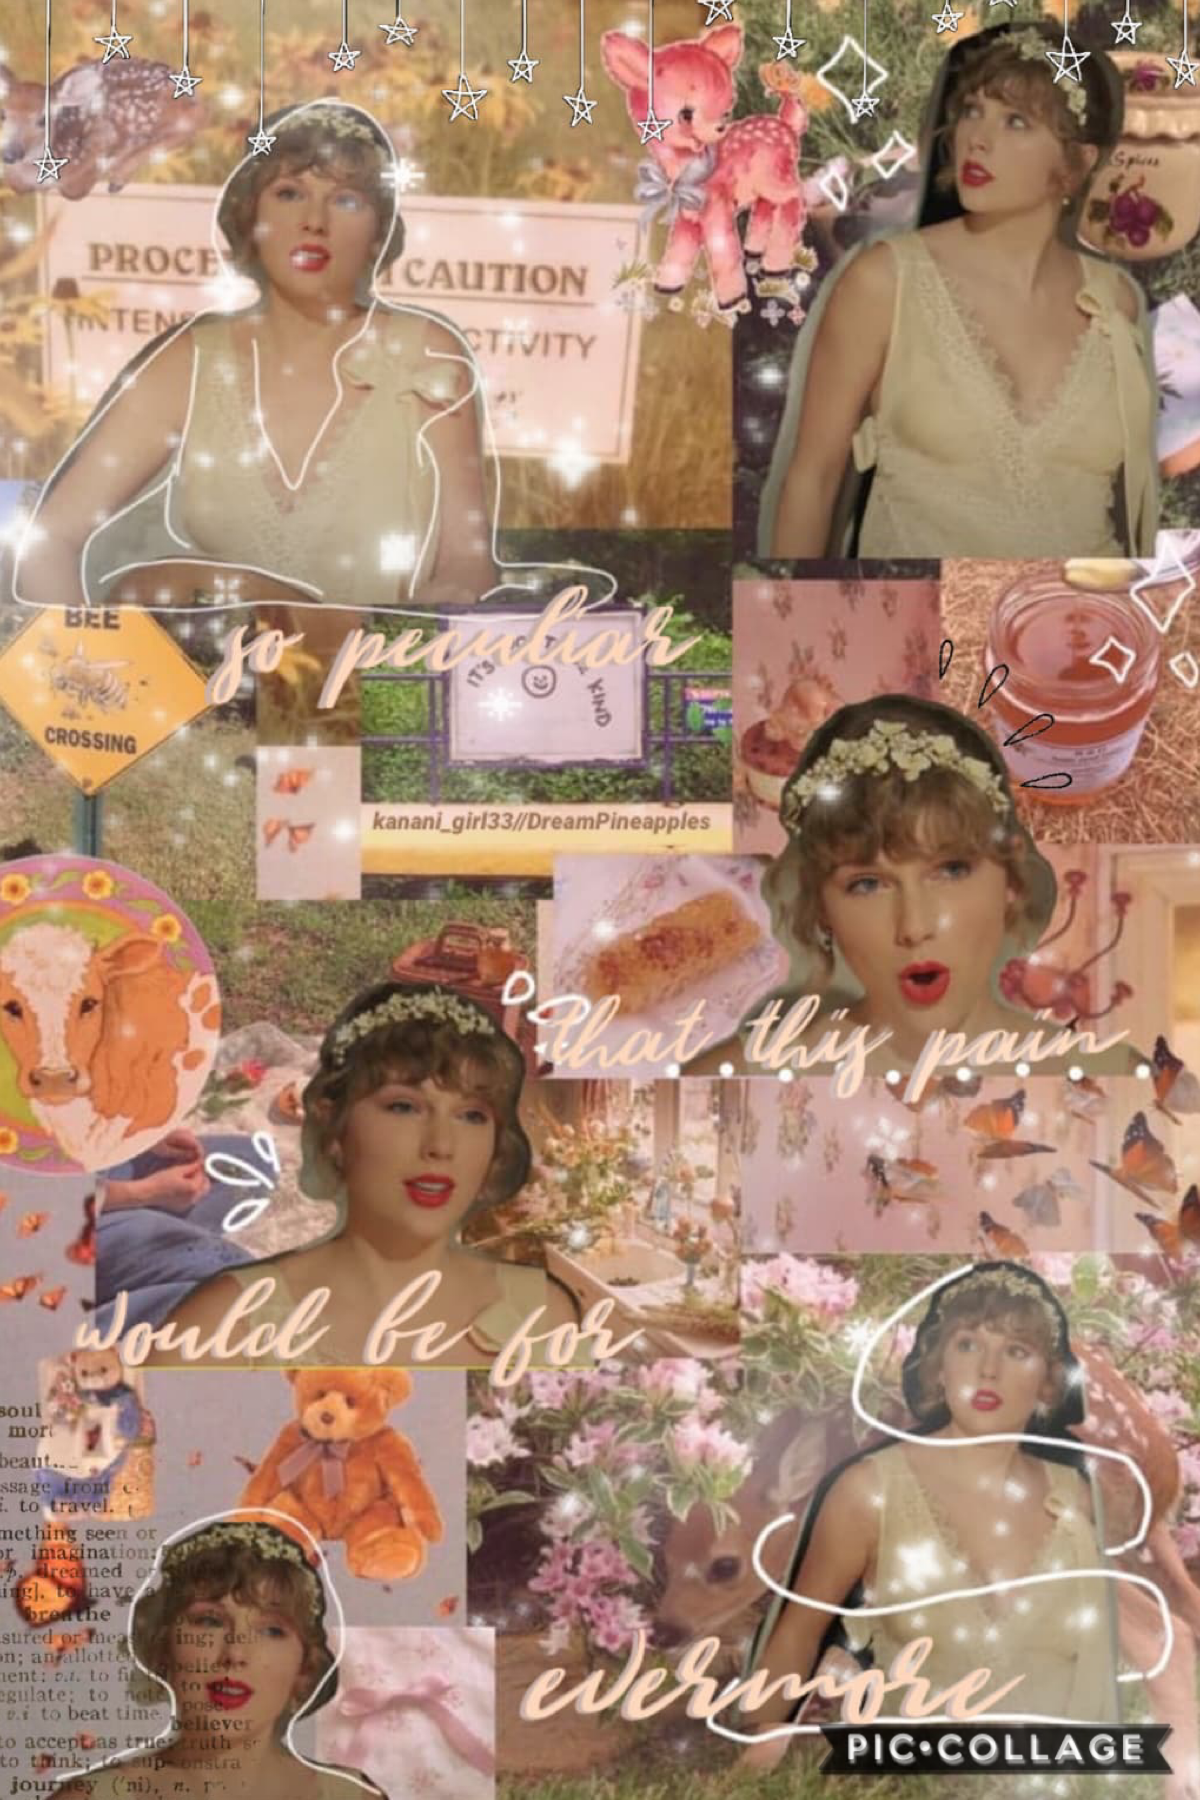 ☁️ T A P ☁️ collab with kanani_girl33 i love her sm y'all she's actually the bestest person ever!!! i did bg she did text :) qotd: fav song(s) on evermore aotd: champagne problems or gold rush!! december 13, 2020